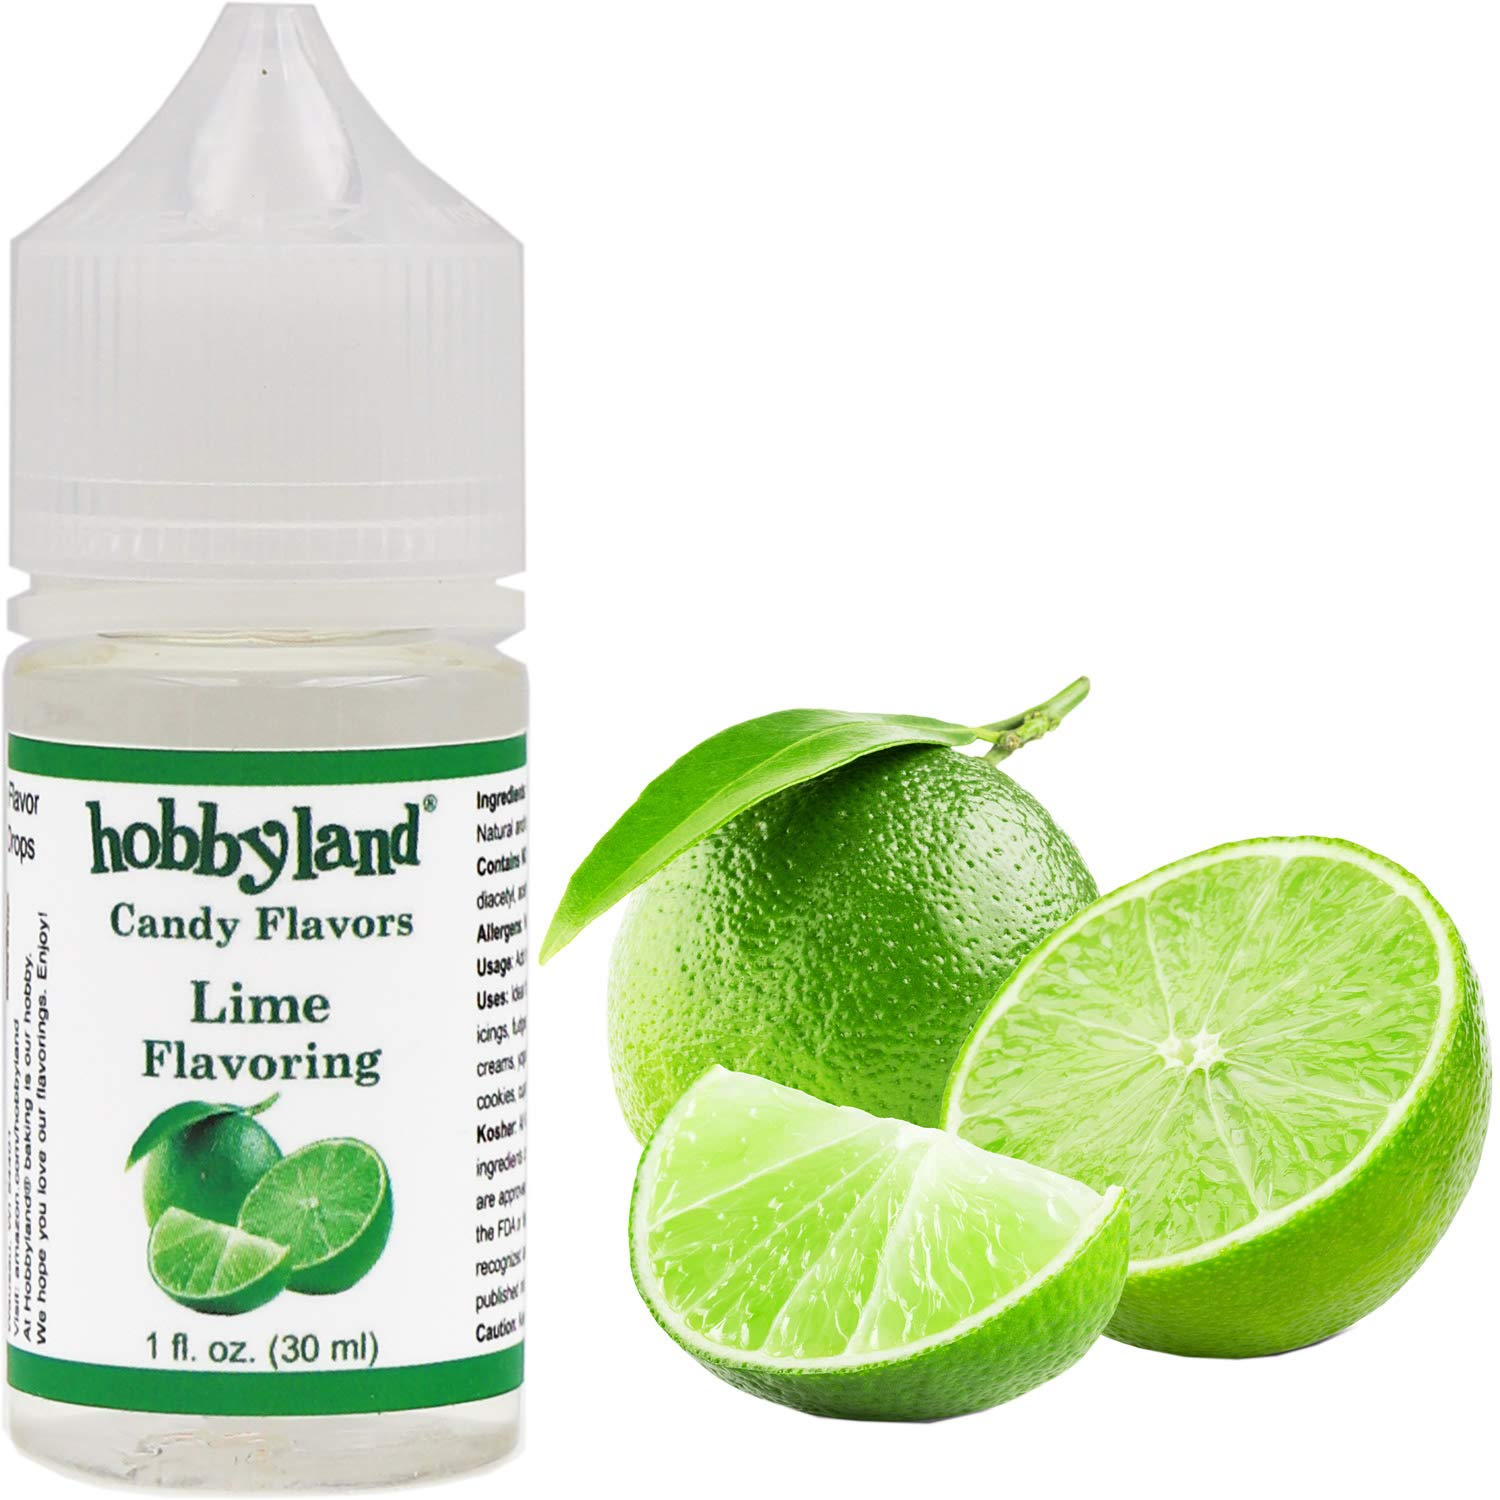 Hobbyland Candy Flavors (Lime Flavoring, 1 Fl Oz), Lime Concentrated Flavor Drops